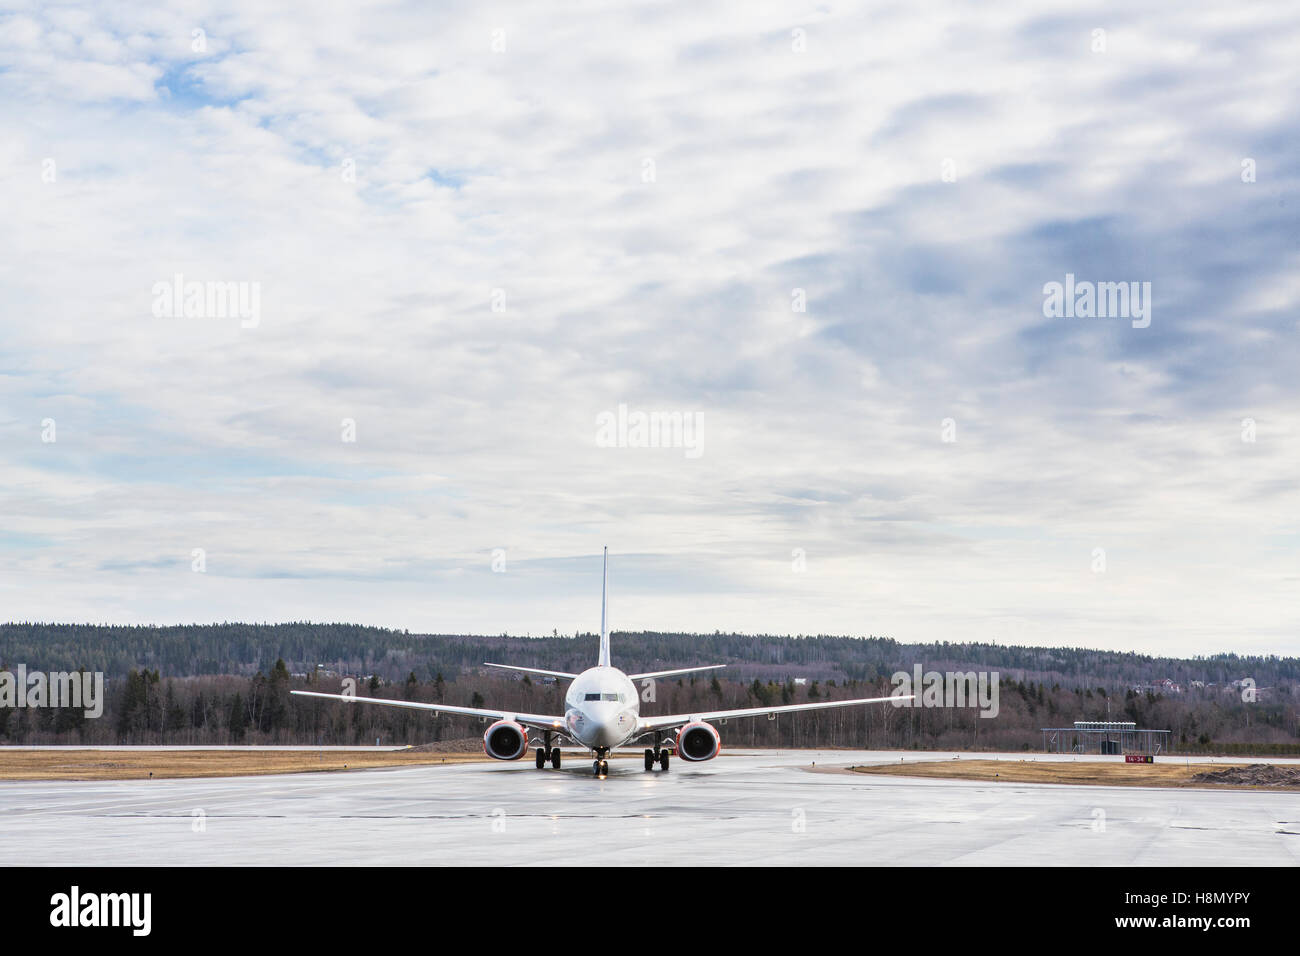 Airplane on runway - Stock Image